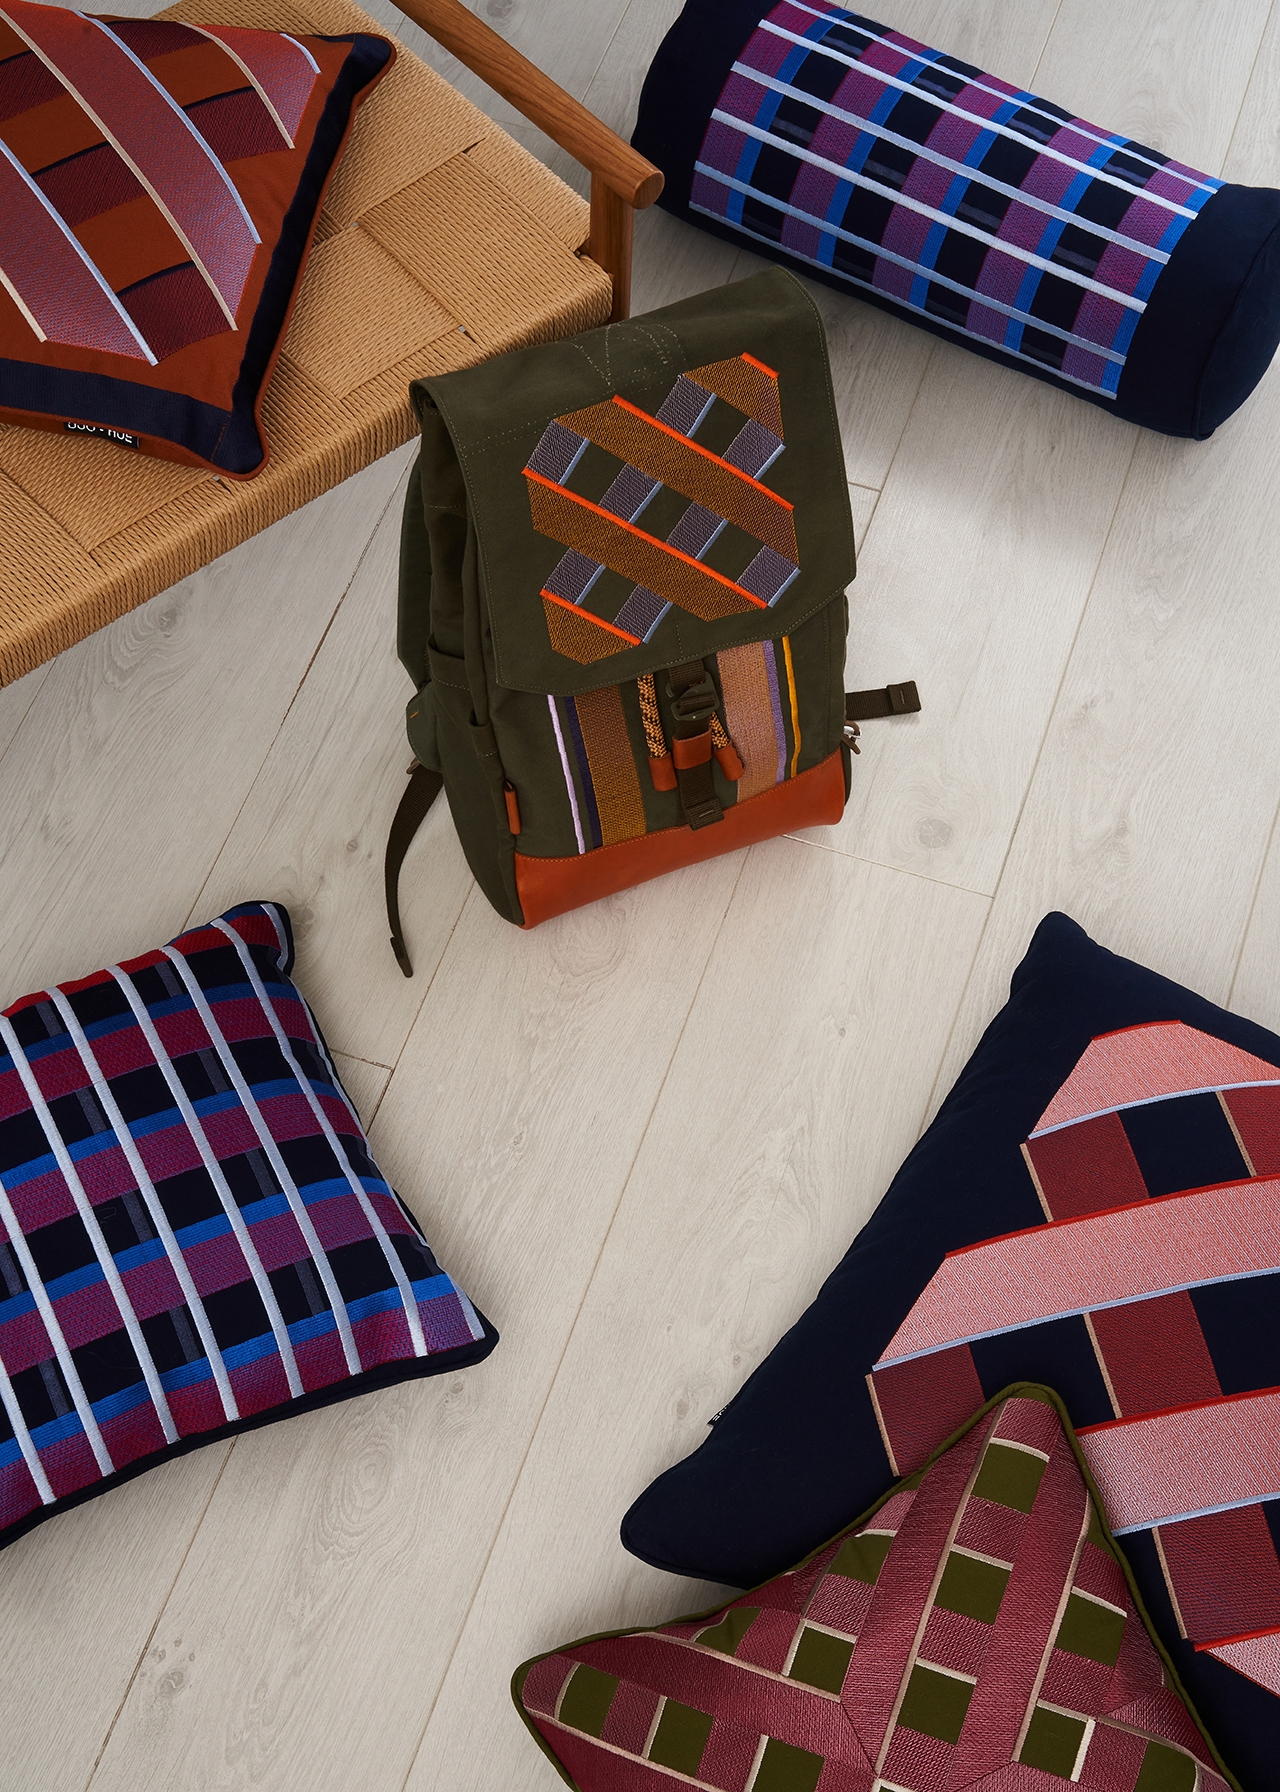 interior space with various textiles and backpack